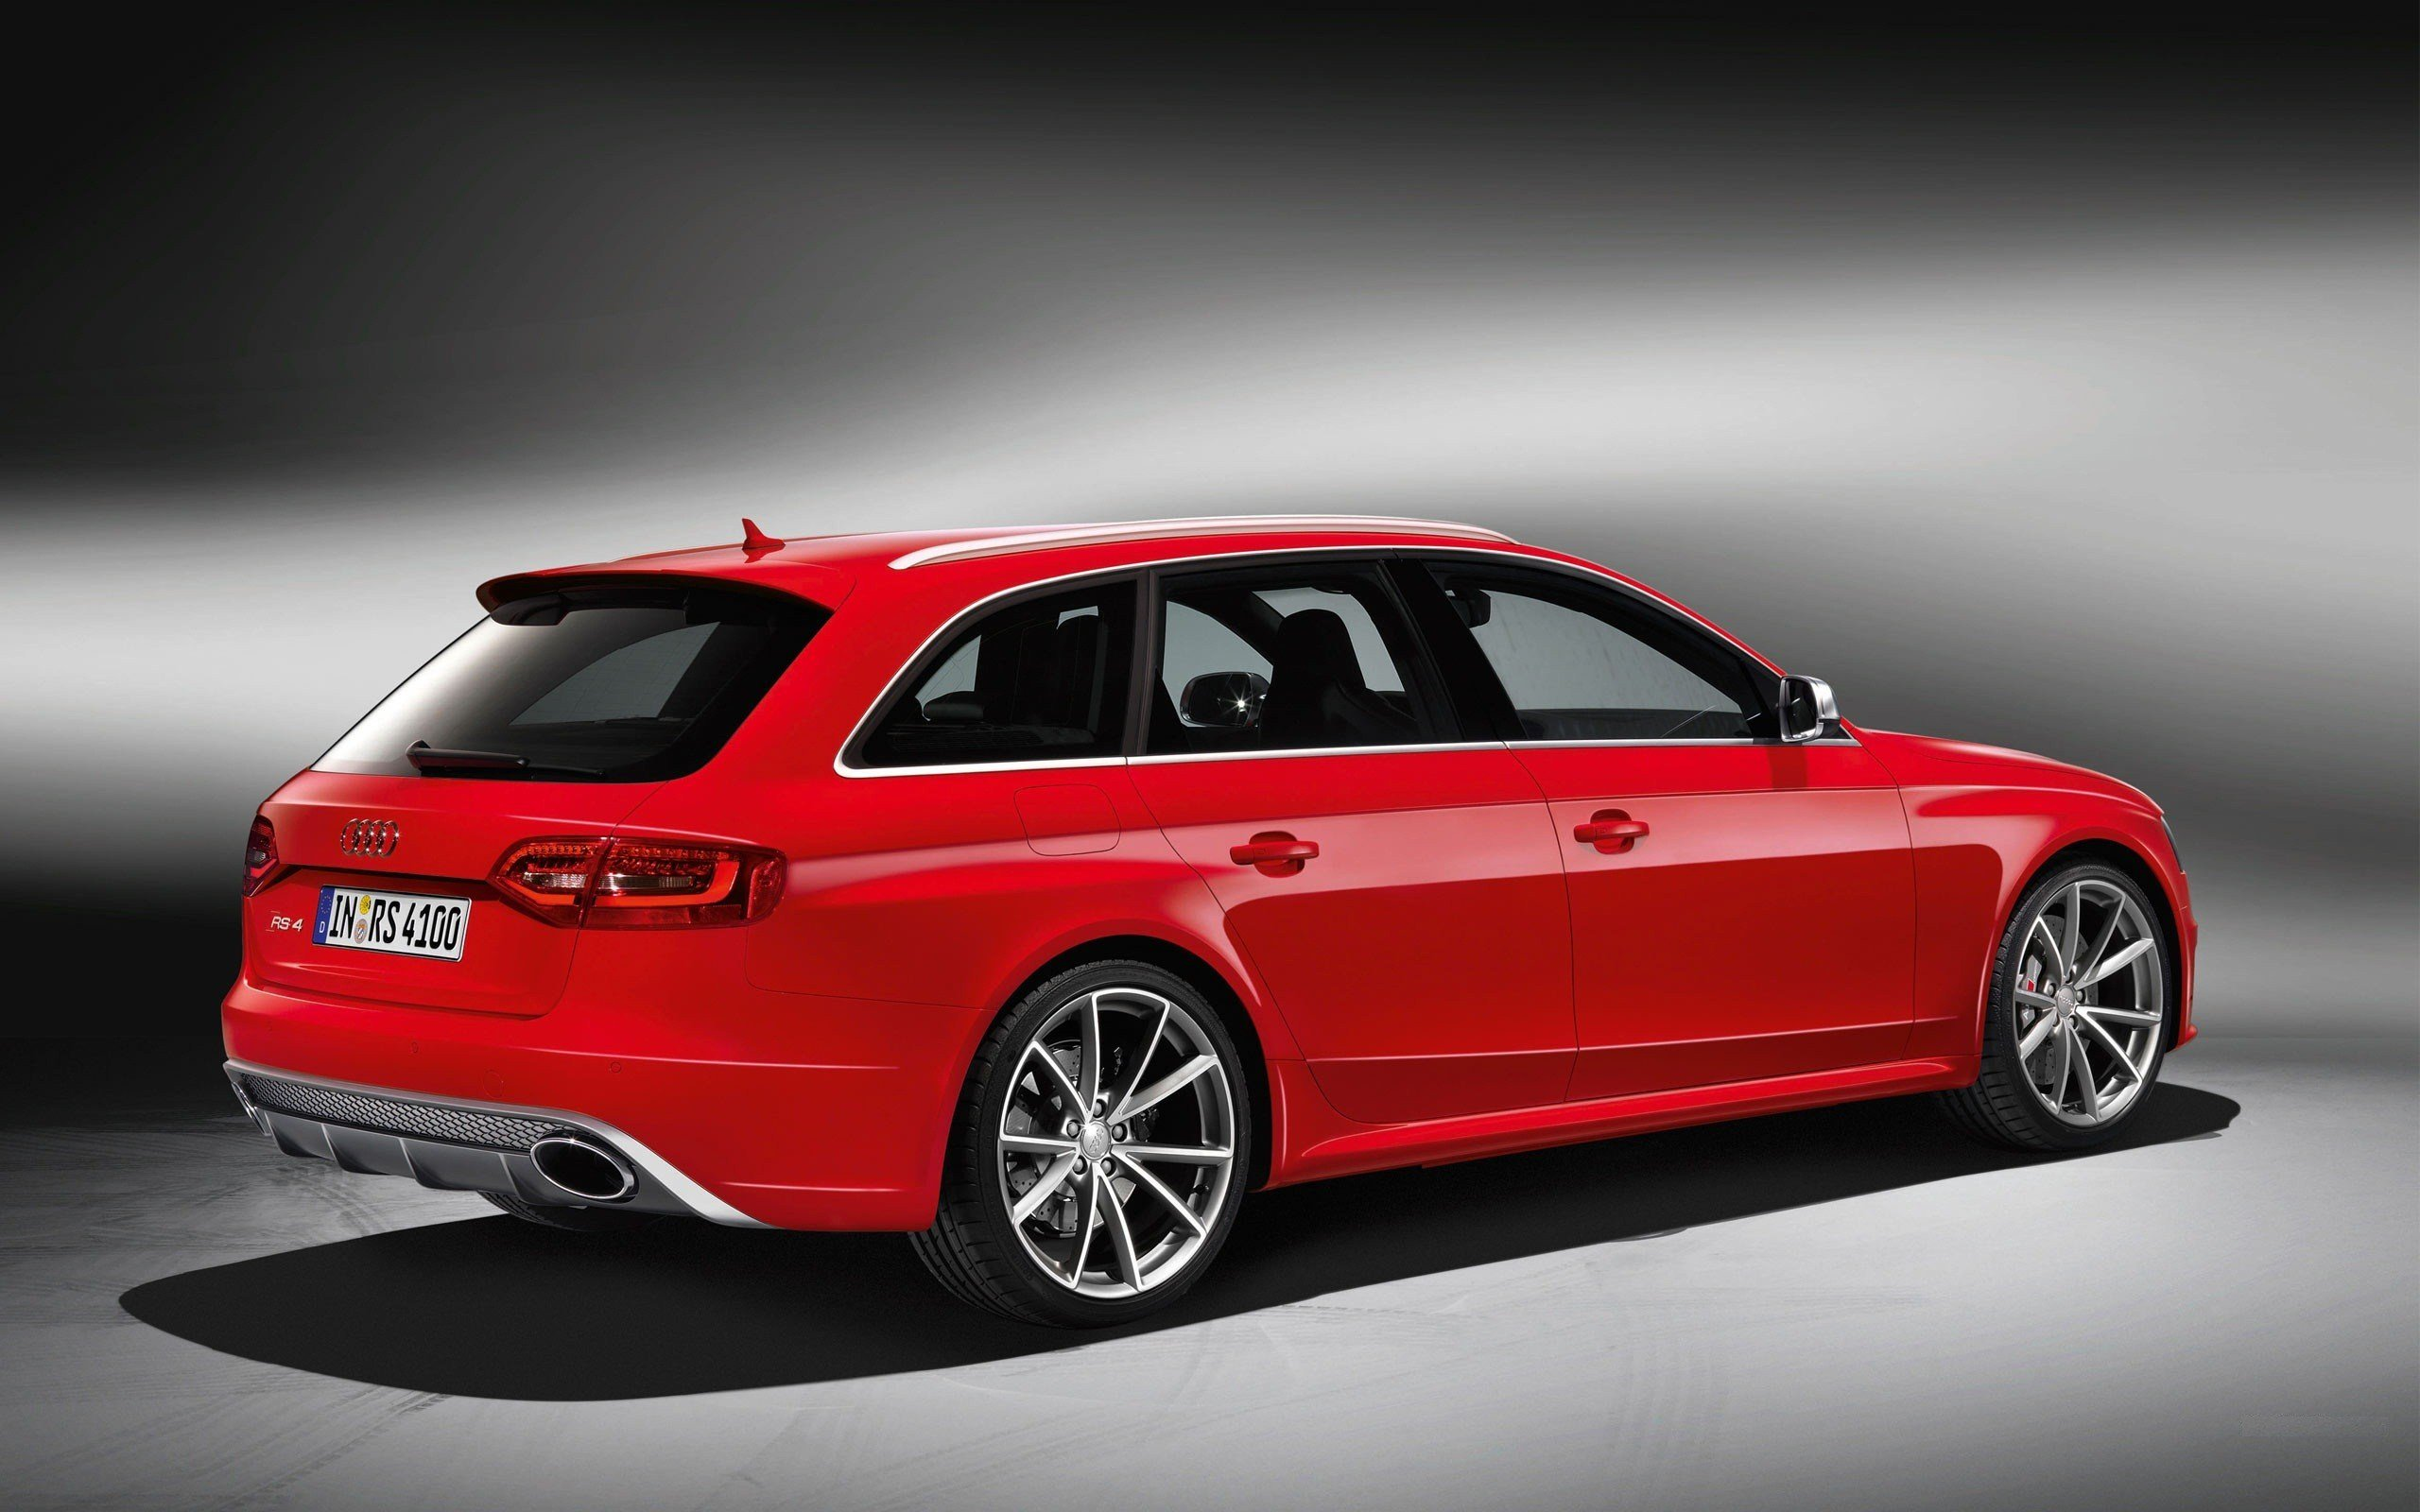 Latest Red Cars Avant Vehicles Sports Cars Audi Rs4 Wallpaper Free Download